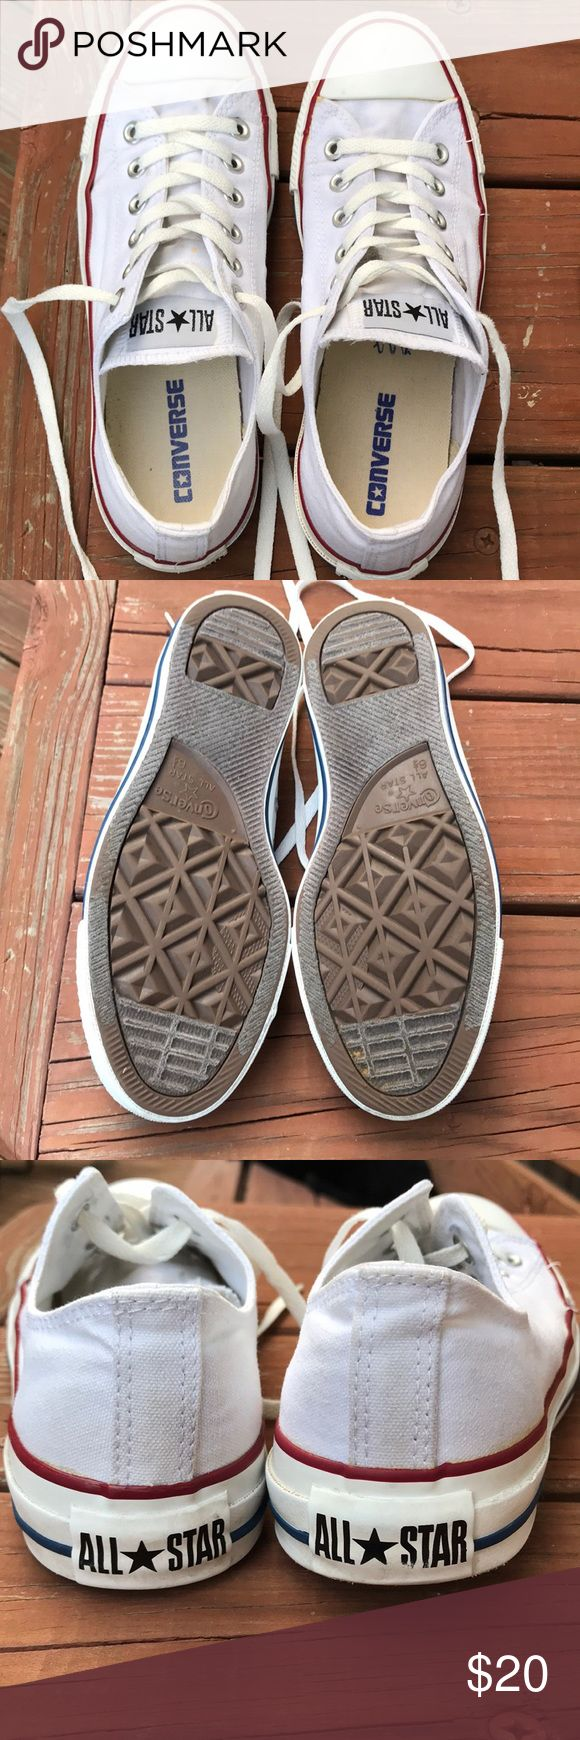 White converse tennis shoes Size 6.5 in men's white converse tennis shoes. Women's size 8.5 Gently used. Good condition Converse Shoes Sneakers